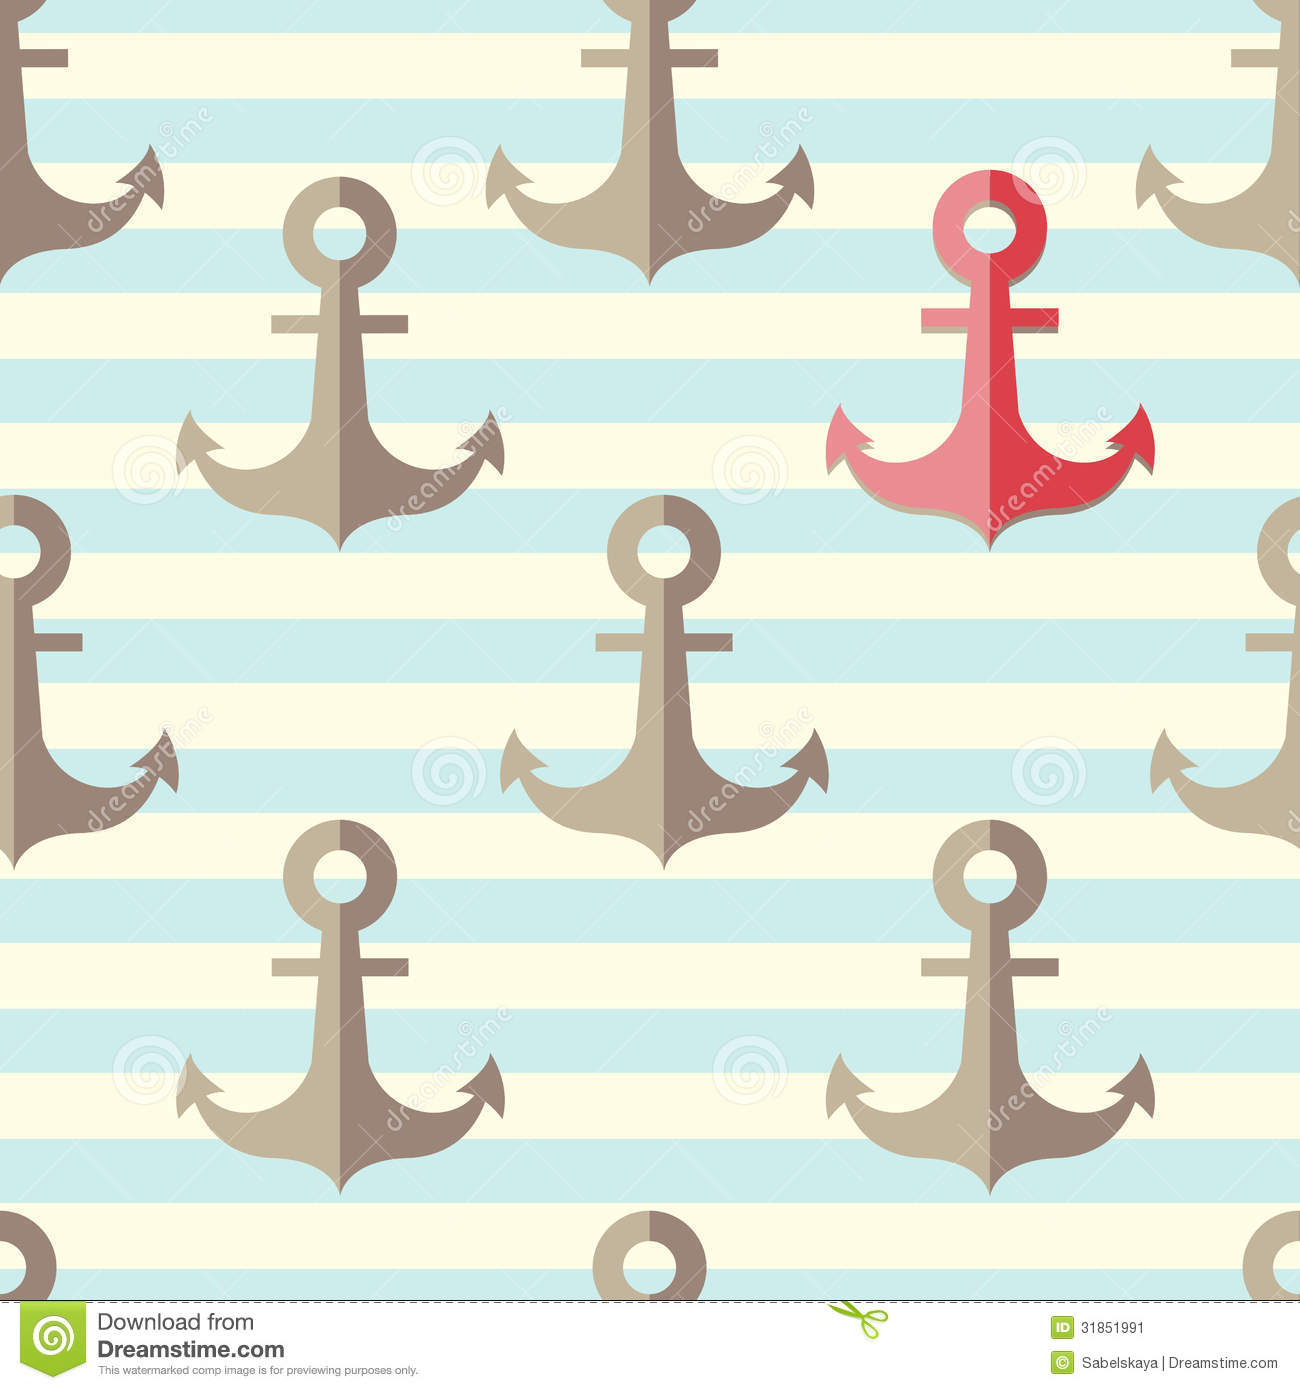 Set of anchors with a lonely red anchor on a striped background